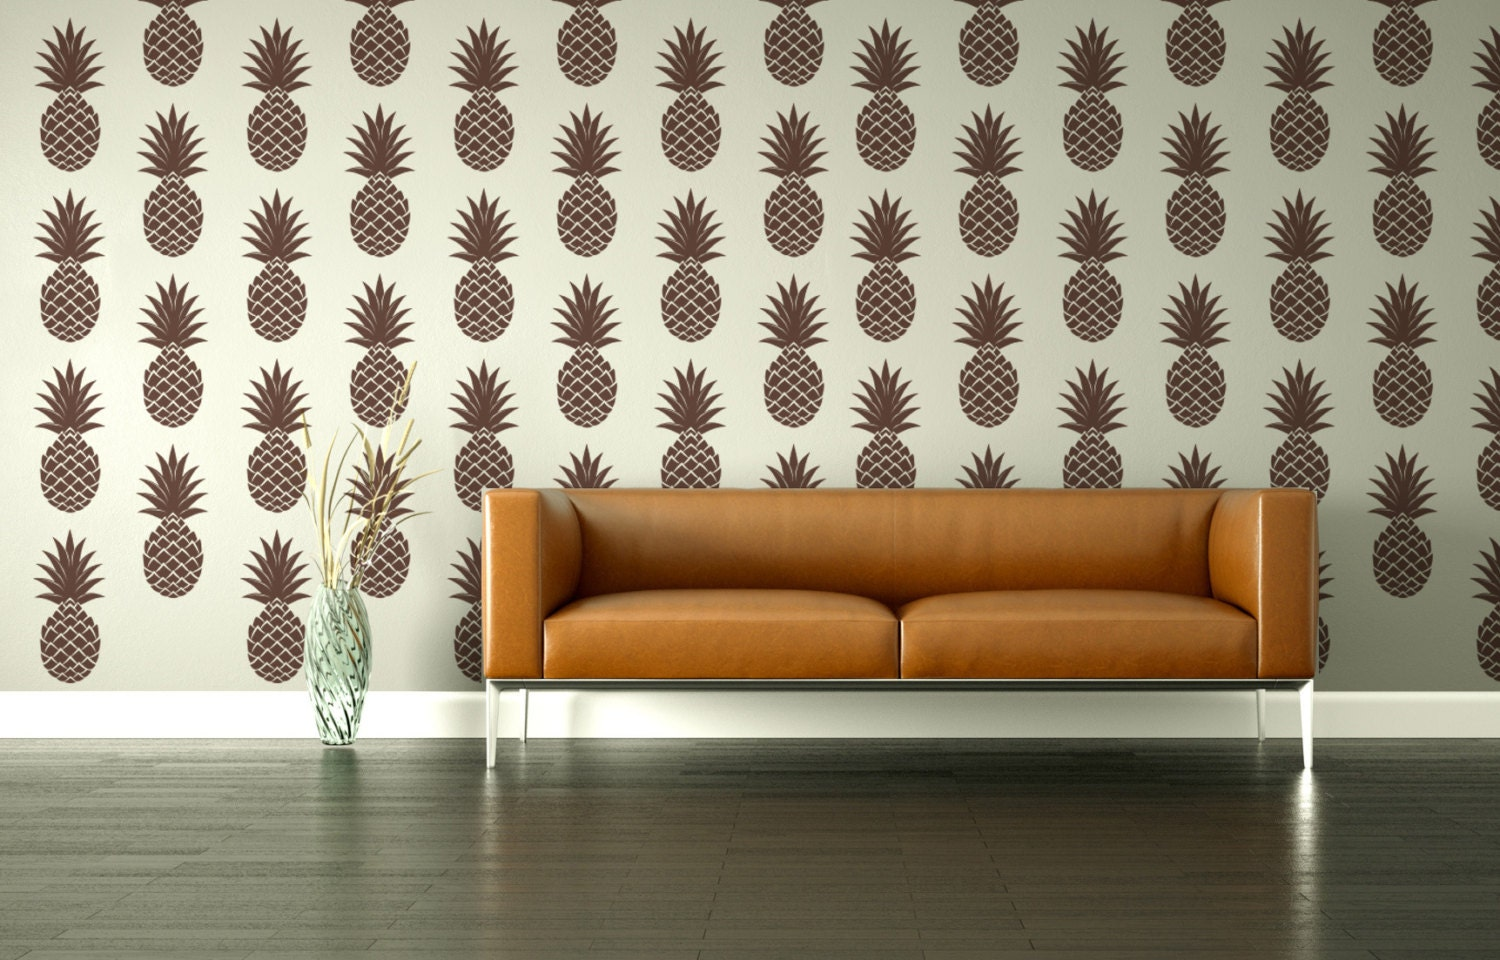 Retro wall decal pineapple geometric fruit by wallstargraphics - Retro wallpaper for walls ...